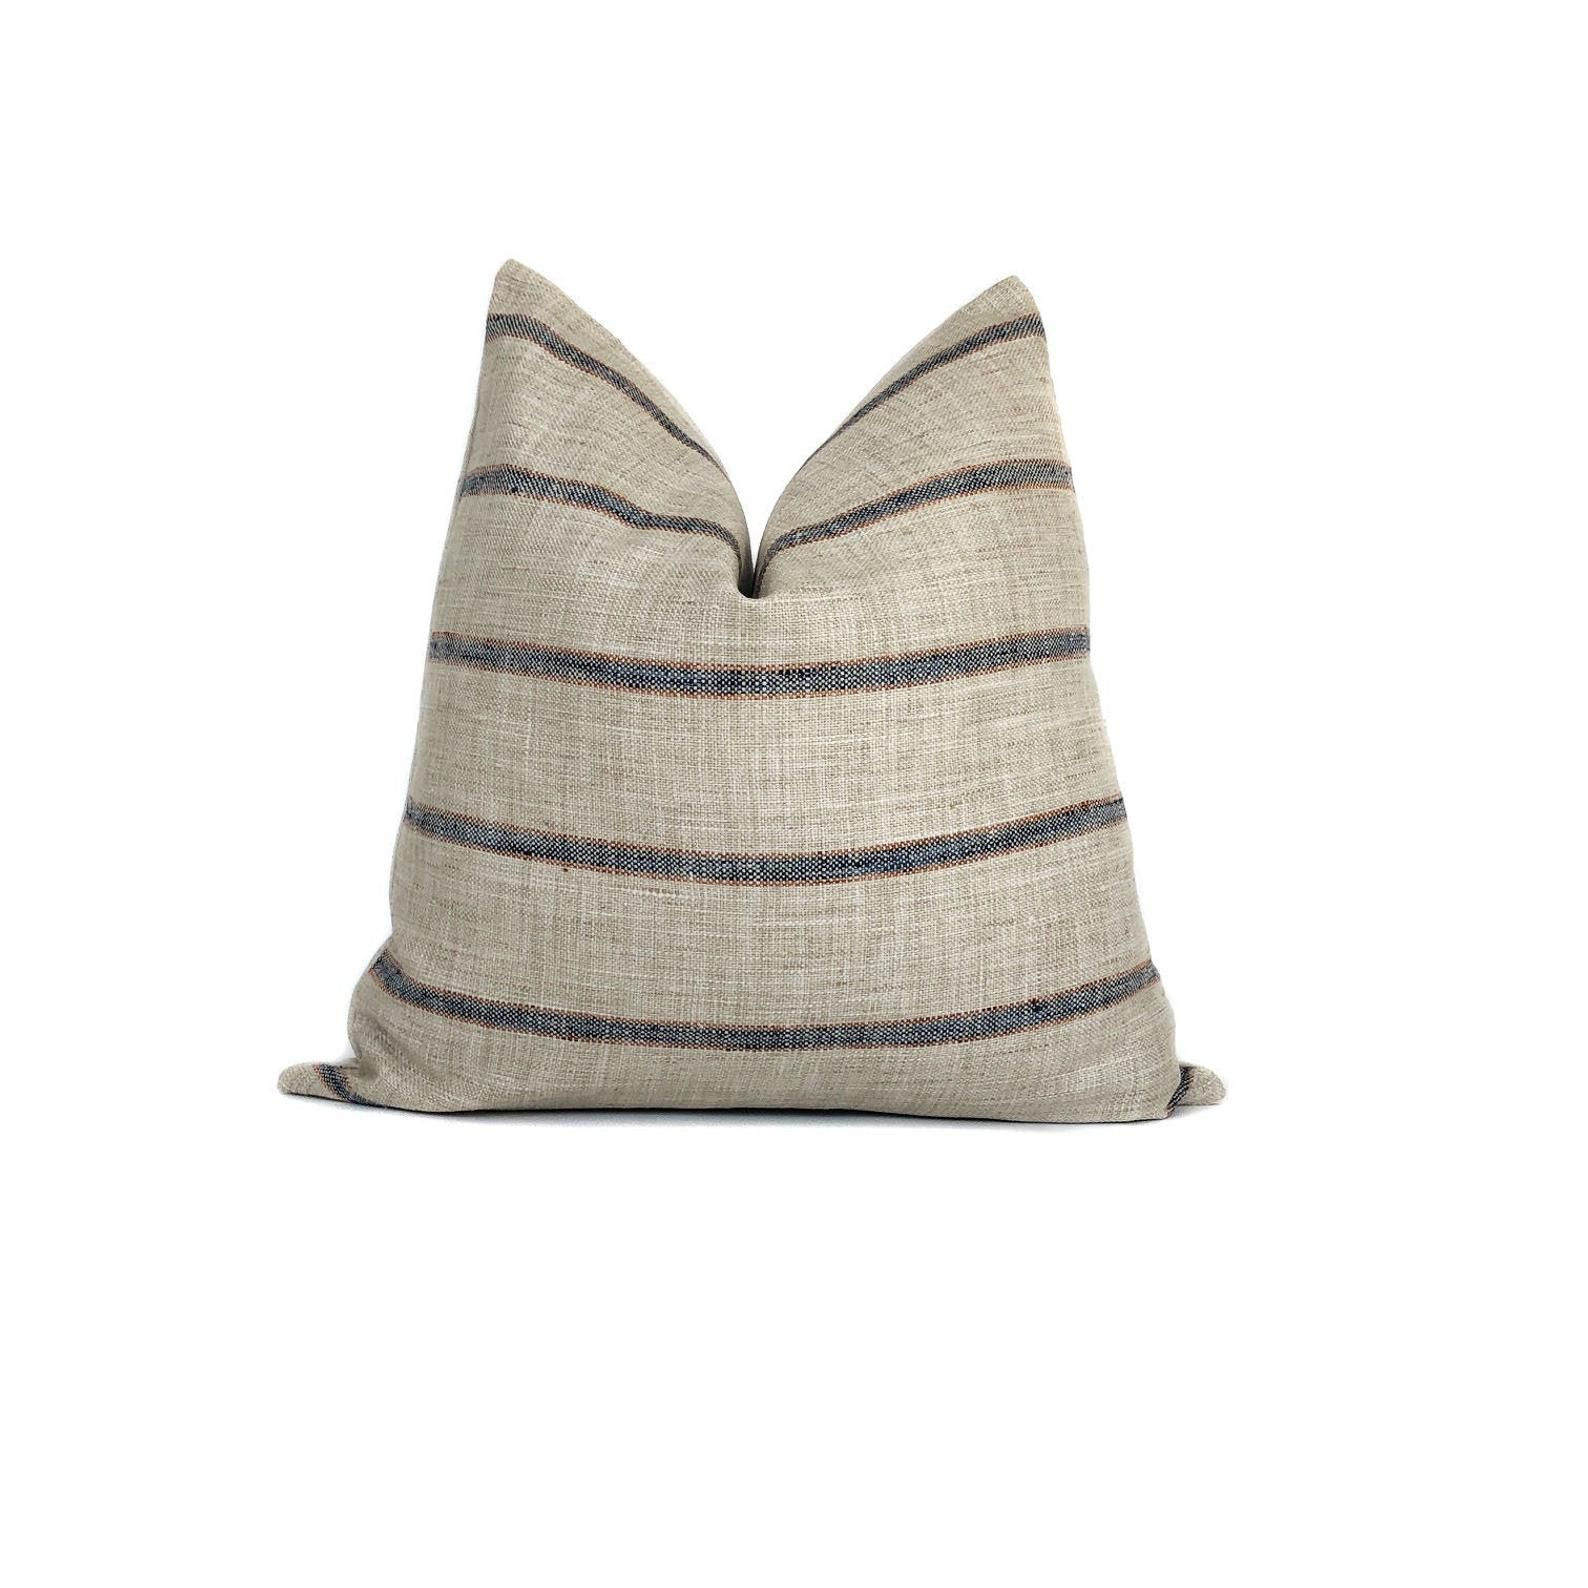 Farmhouse Stripe Pillow Cover Rustic Woven Blue and